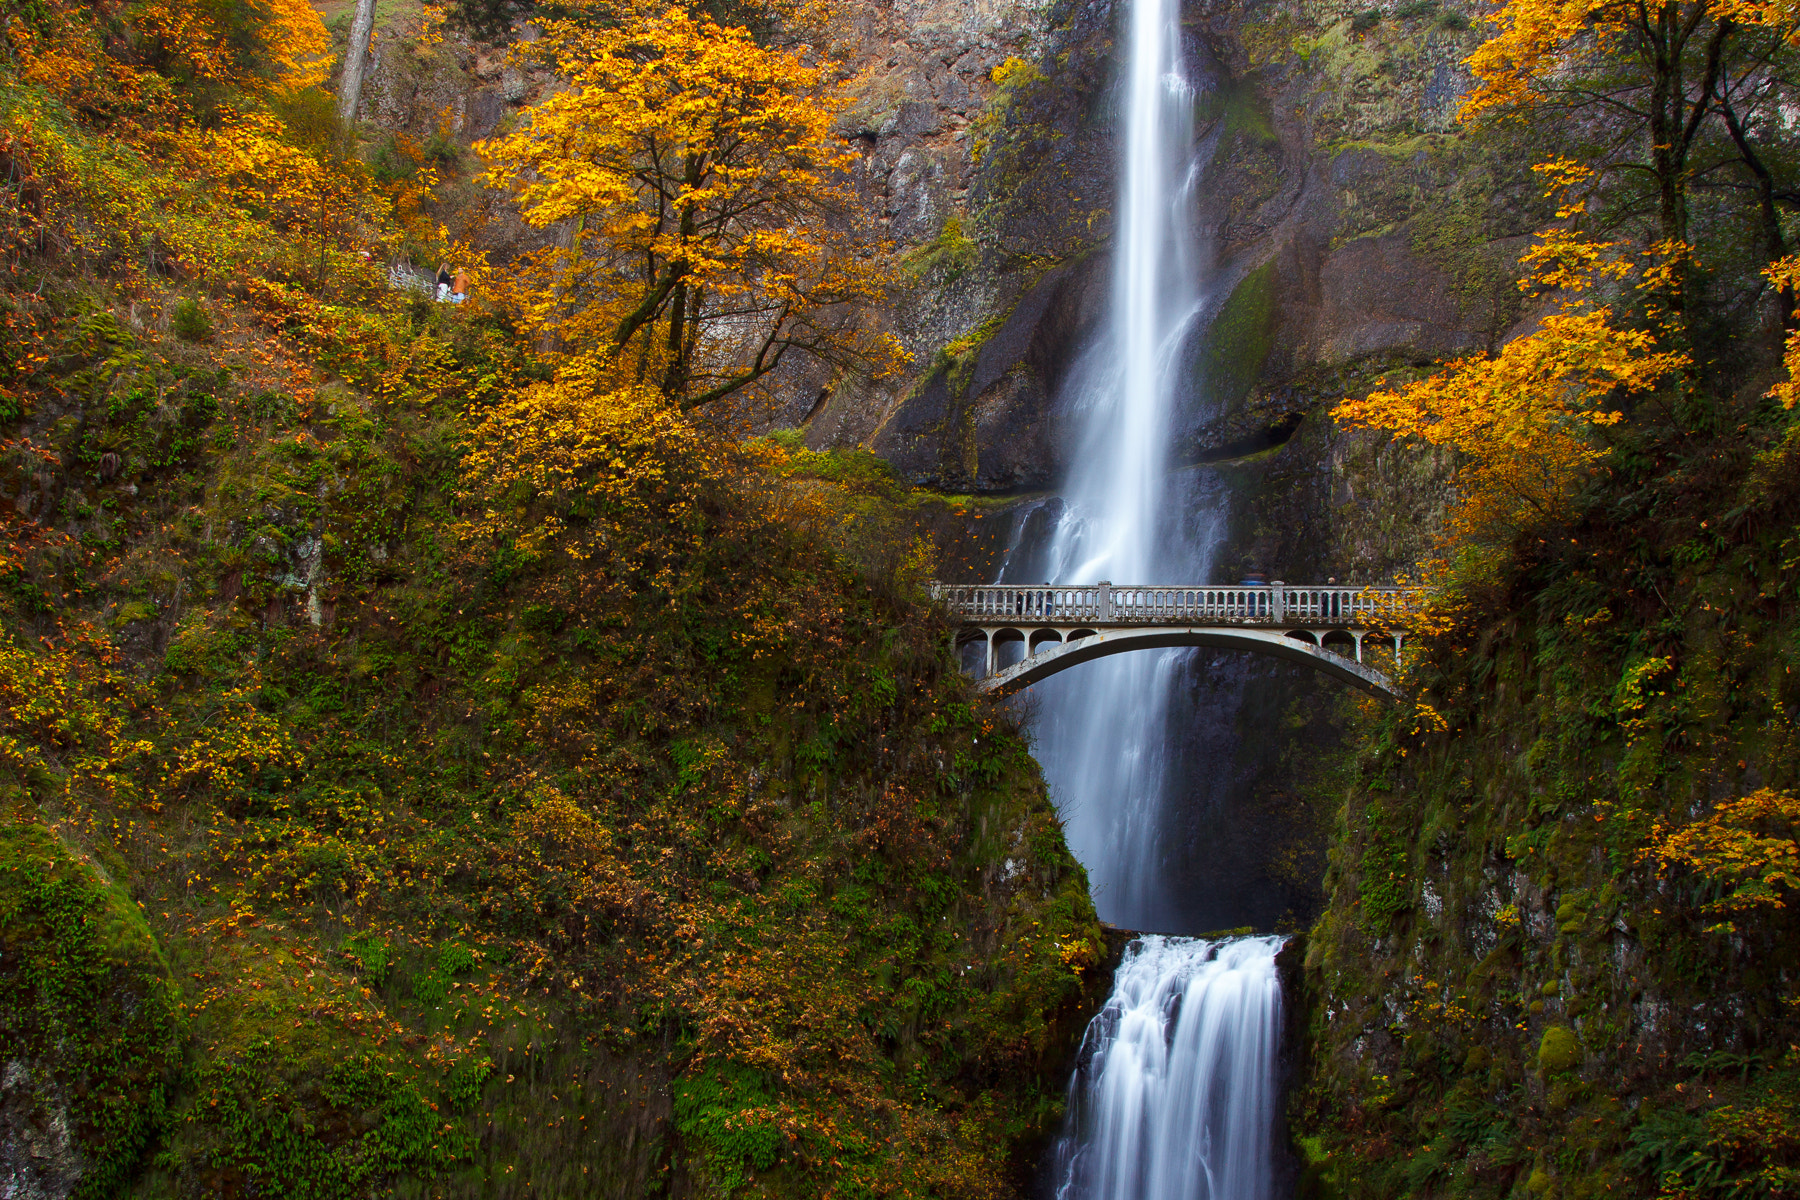 Photograph Multnomah Falls in Full Color by Chad Scott on 500px